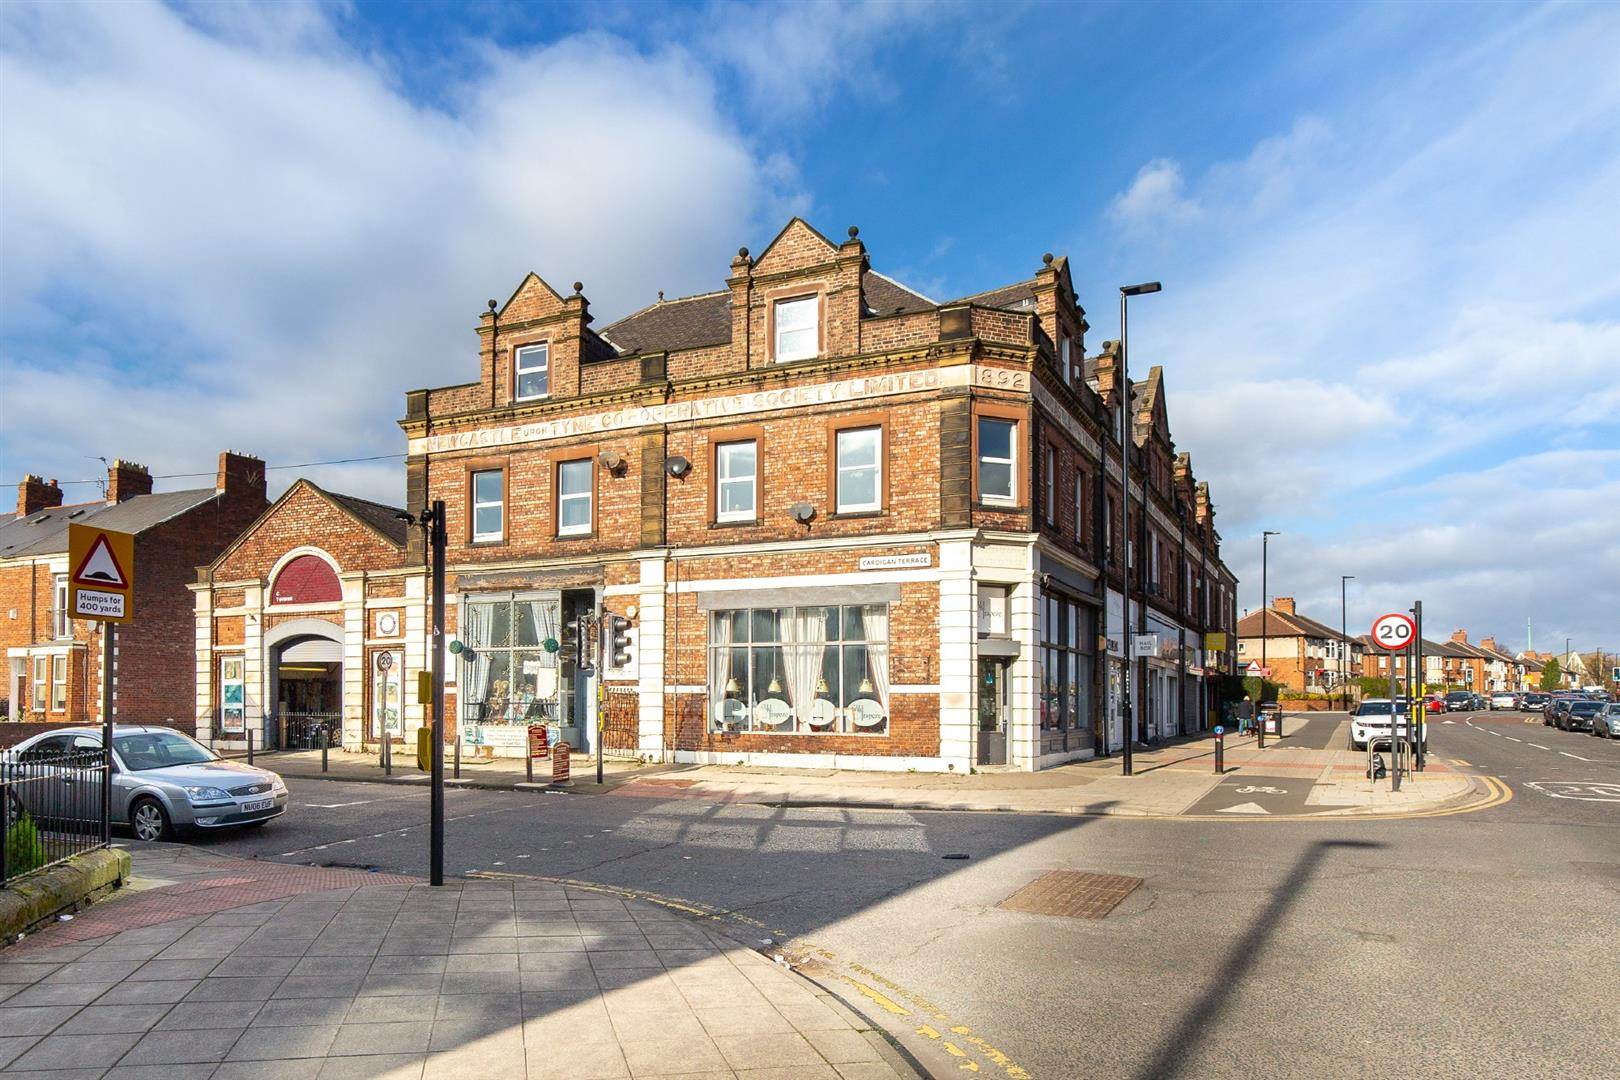 6 bed apartment for sale in Newcastle Upon Tyne, NE6 5HH - Property Image 1